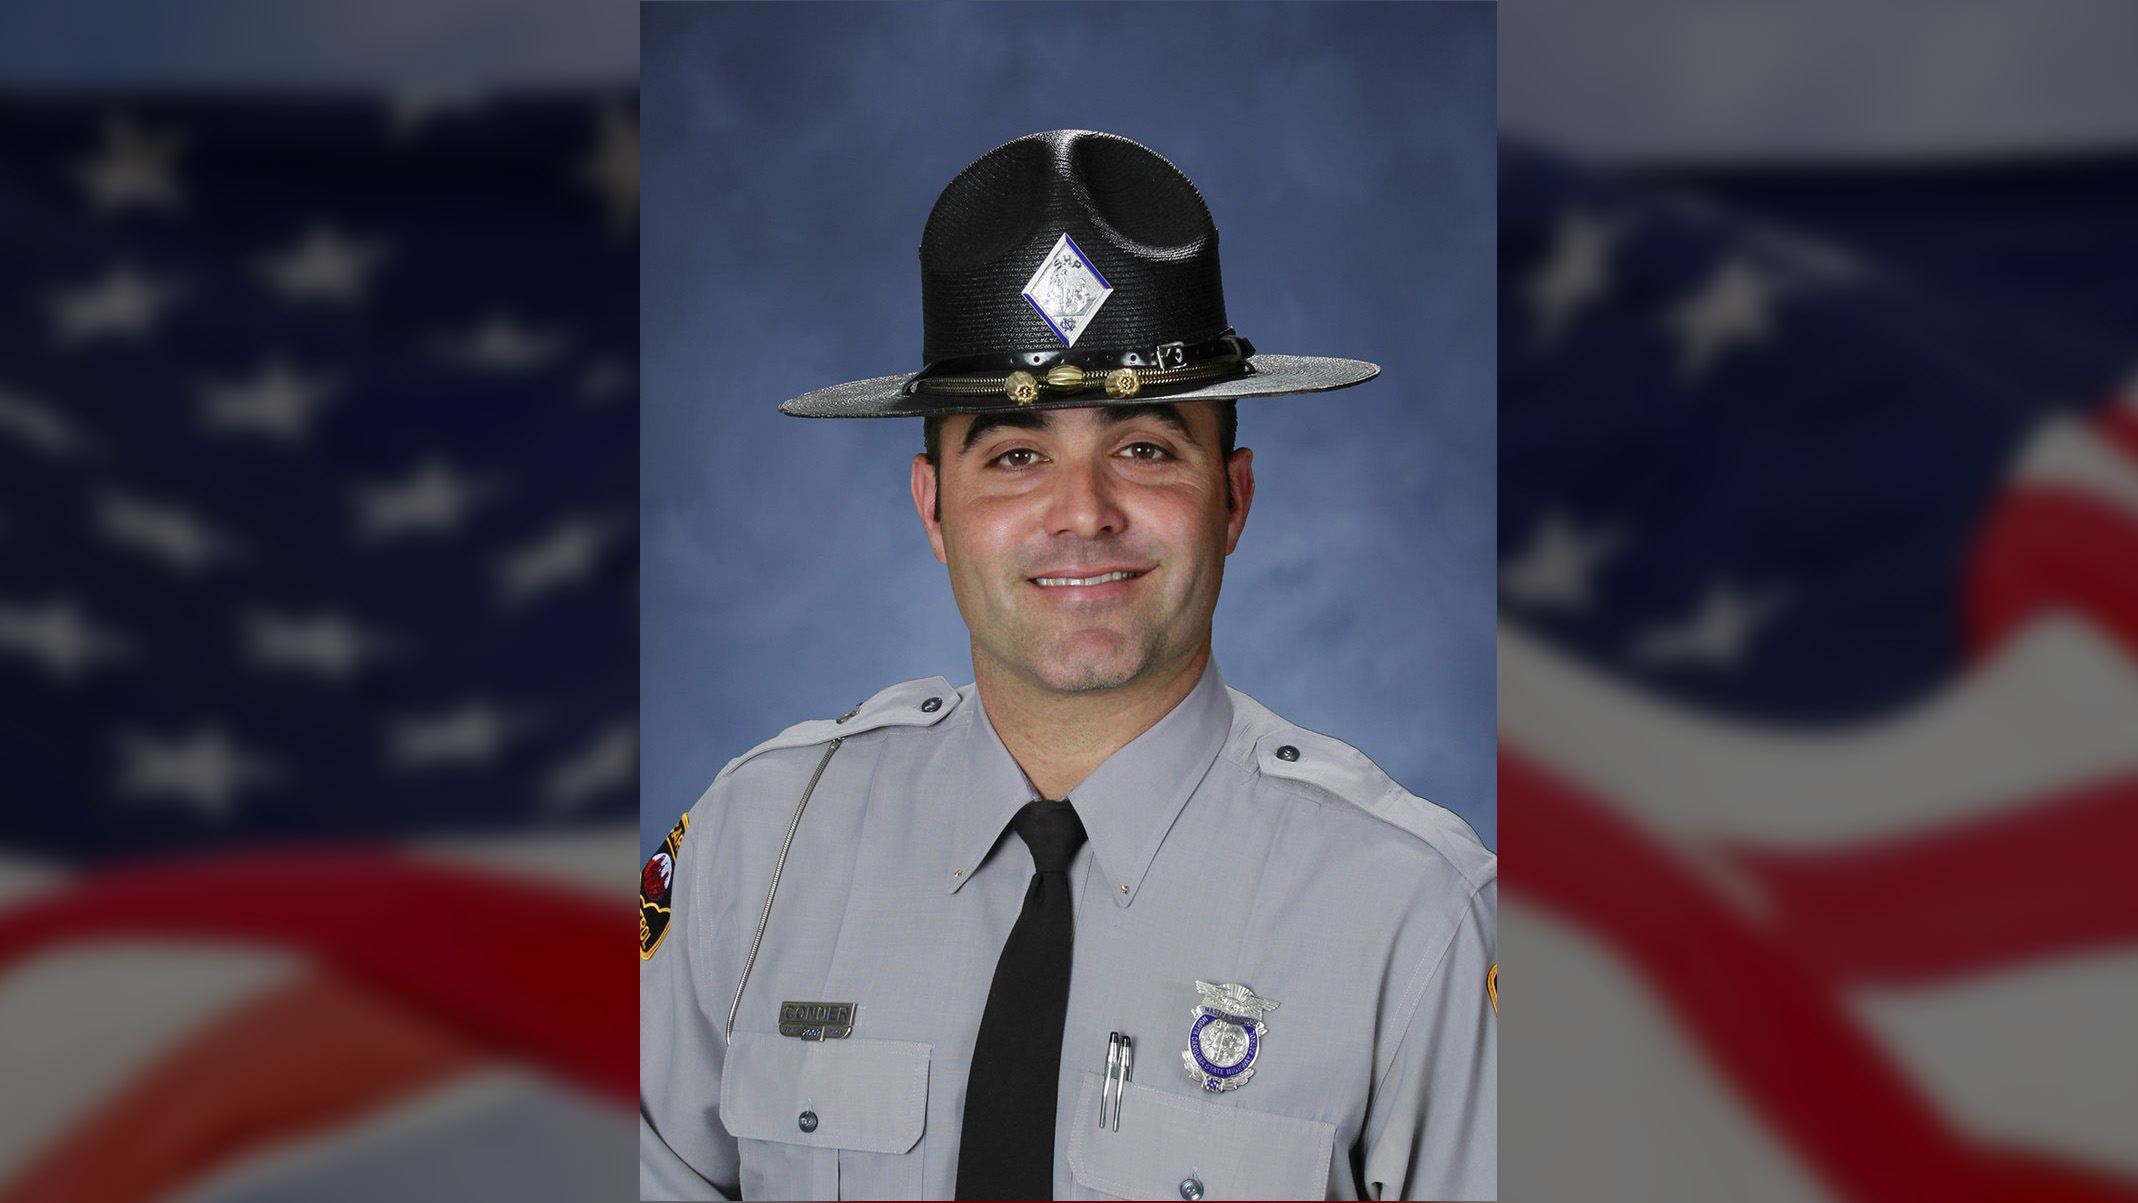 NC state trooper shot, killed while conducting traffic stop